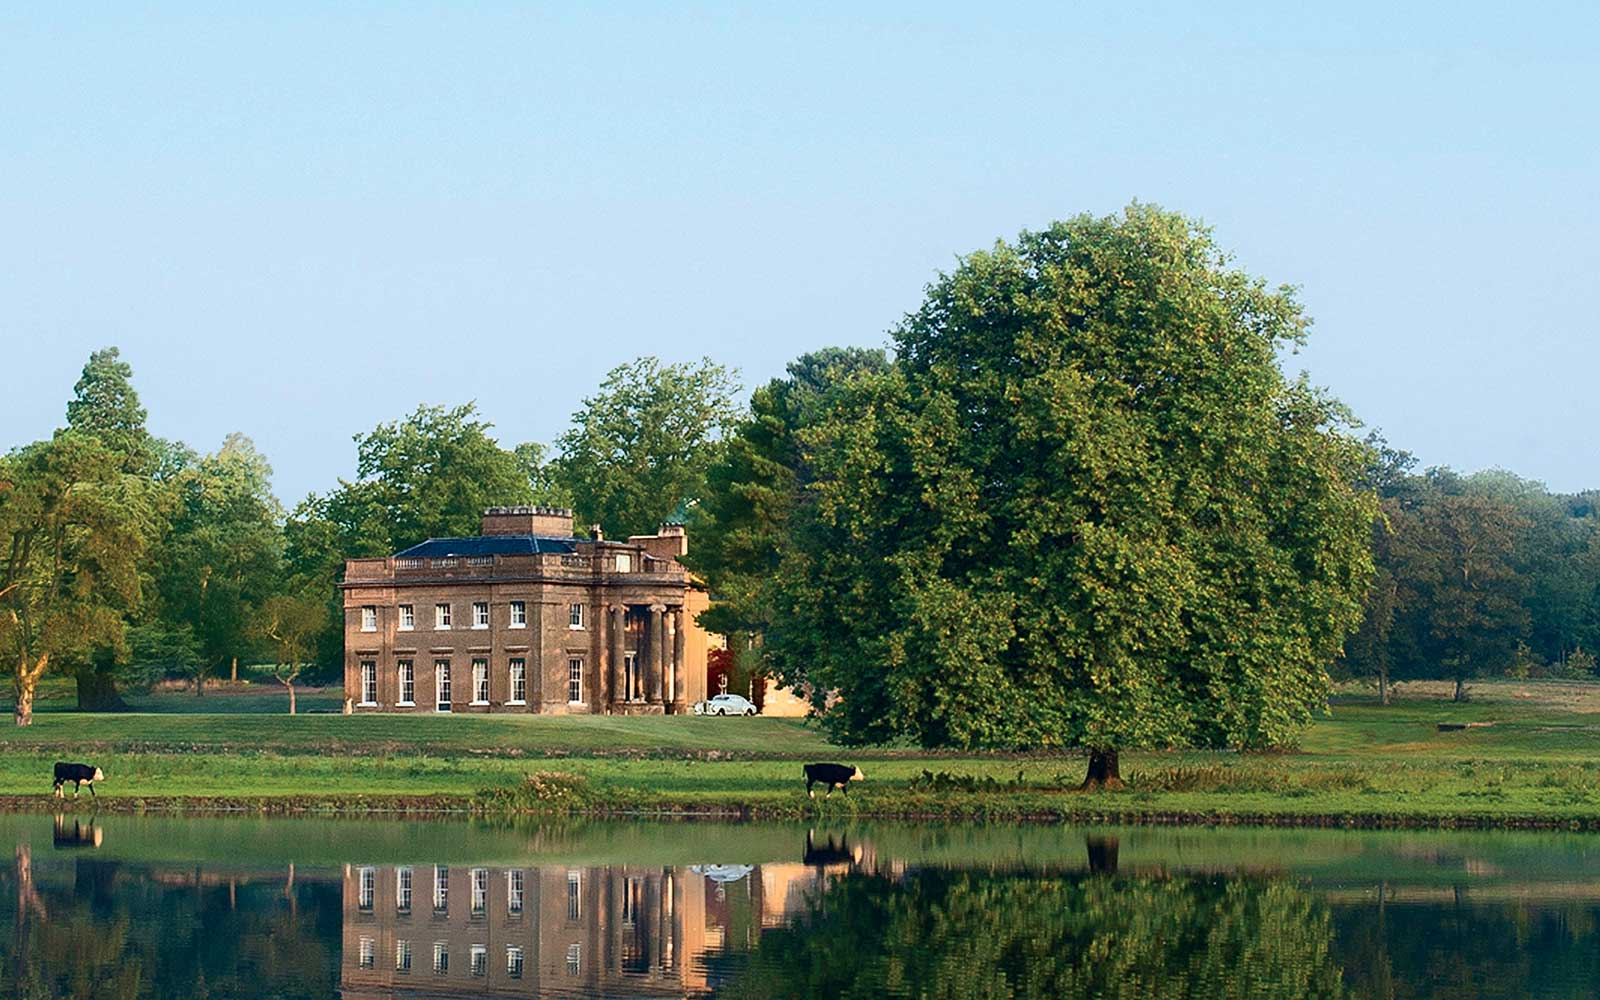 Travel Through Time With a Stay at a Historic English Manor